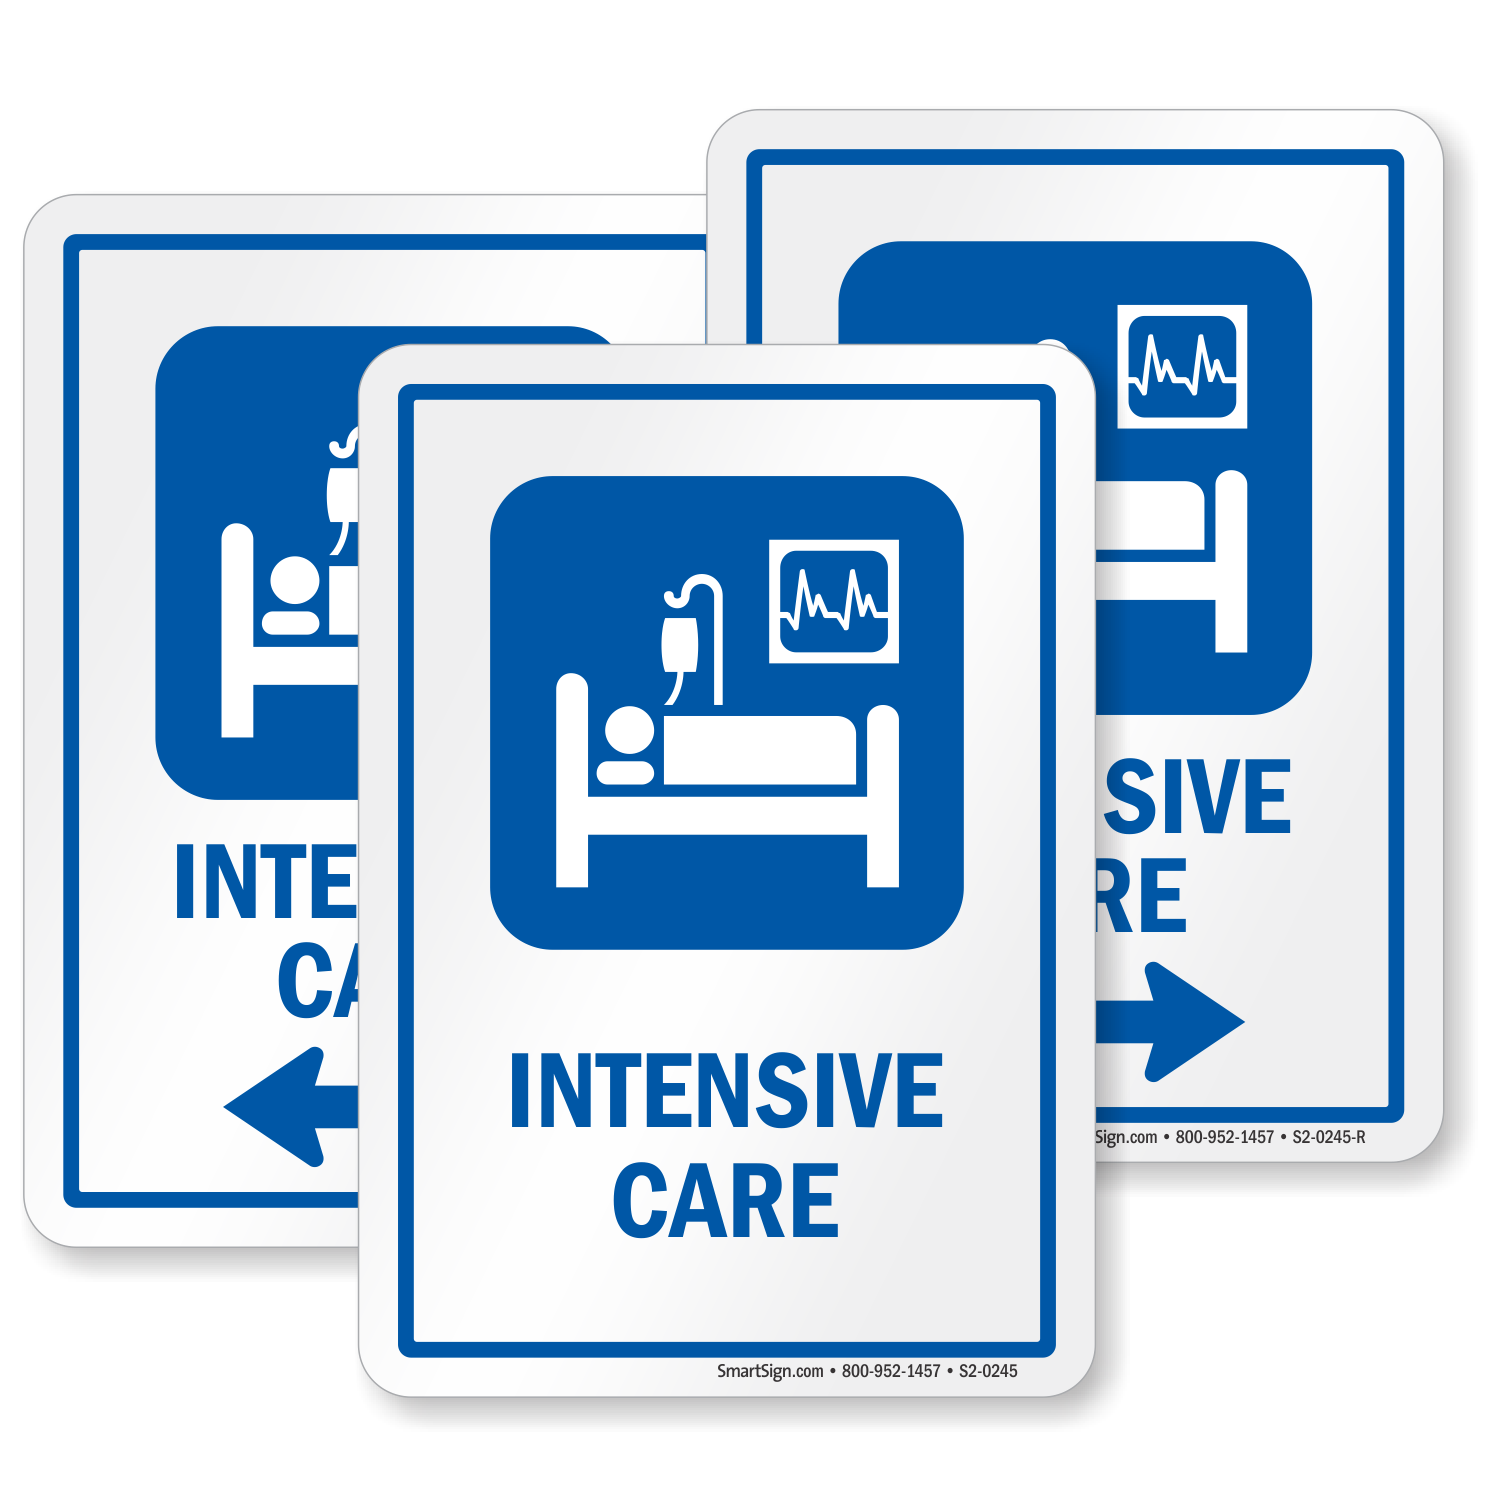 Intensive Care Hospital Icu Sign, Patient On Drip Icu. Foreign Investment In India Auto Rate Quote. Long Term Effects Of Percocet Abuse. Compare Home Security Prices. Emergency Text Message System. Certificate Of Incorporation Delaware. First Alert For Seniors Self Storage Charlotte. Under Sink Filter Installation. Family Law Attorney San Bernardino County